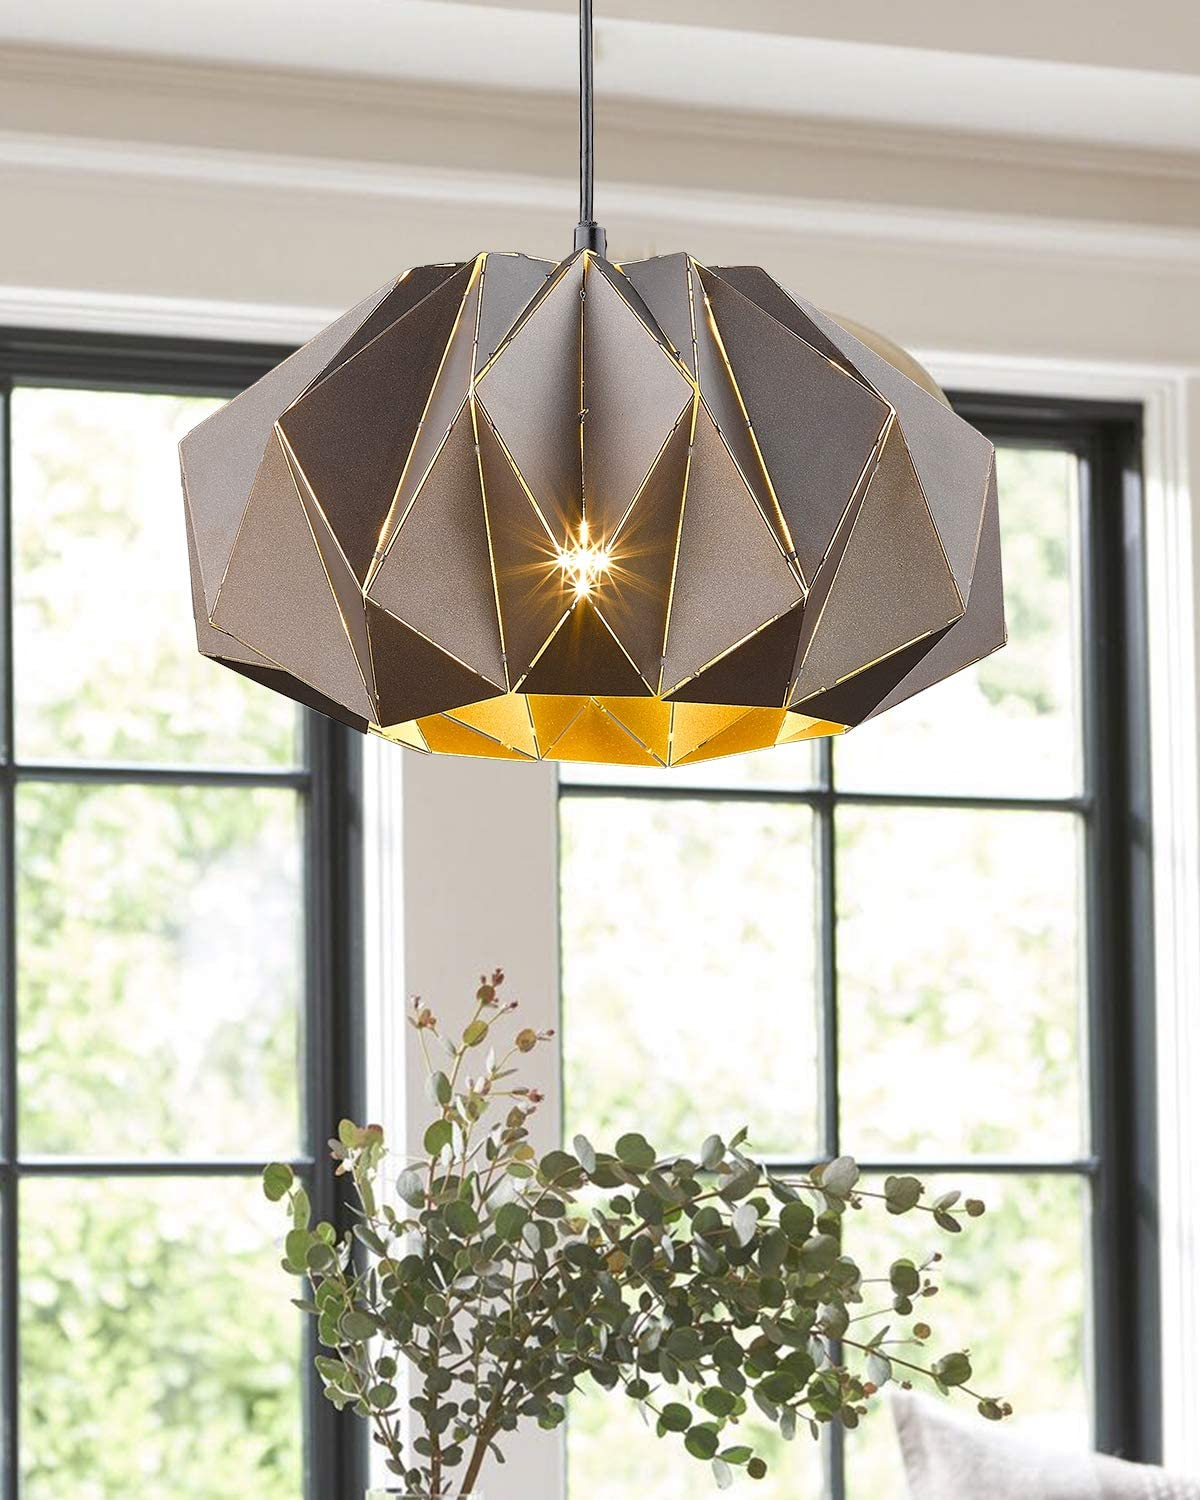 Metal Lantern Pendant Light, VICNIE 13.7 Inches Dining Room Chandelier Hanging Lighting Fixture, Oil Rubbed Bronze Finish with Adjustable Height